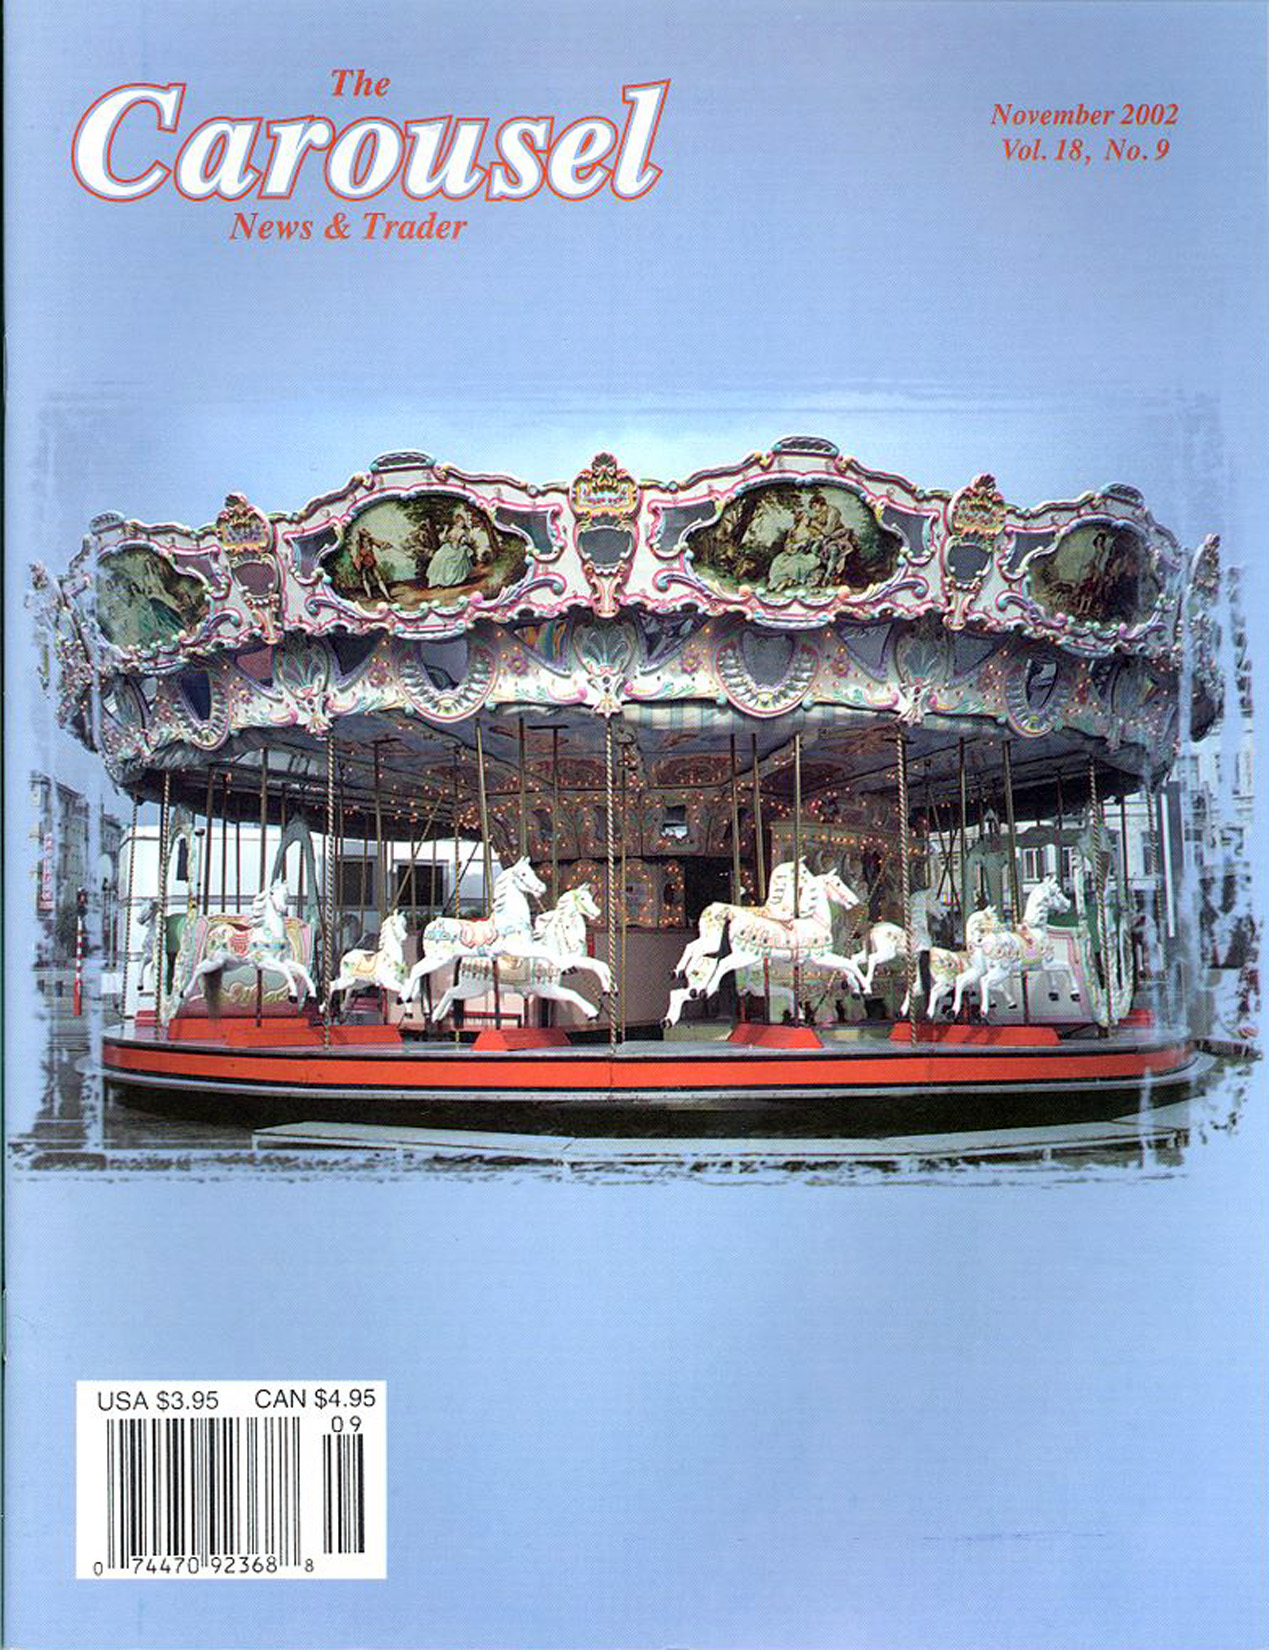 cnt_11_2002-Ca-1893-DeVos-Heyn-carousel-Brian-Steptoe-photo